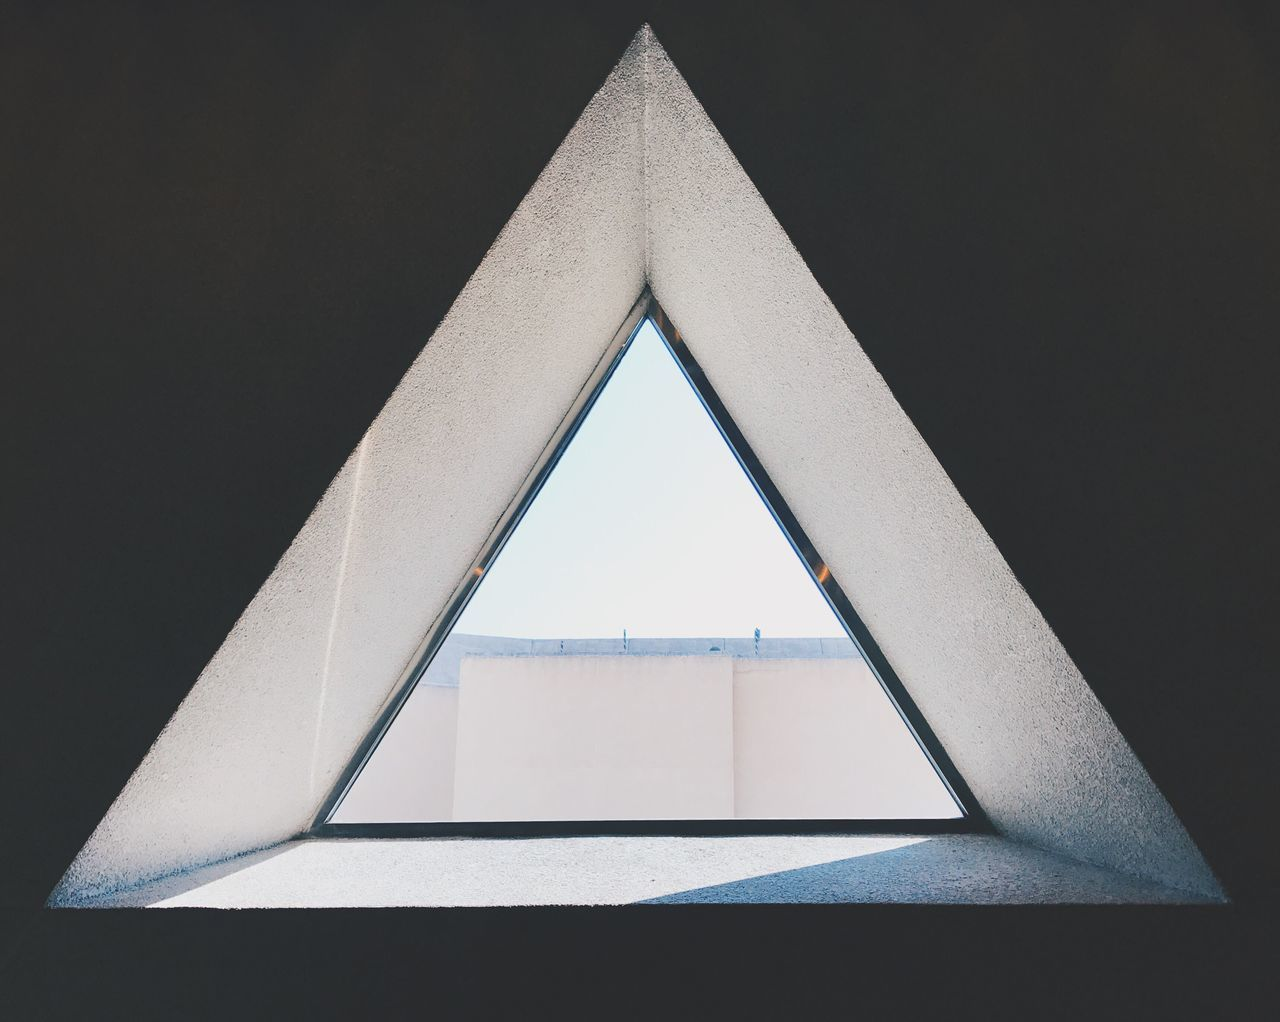 Triangle Shape Architecture No People Built Structure Low Angle View Geometry Indoors  Close-up Day Window Shapes Shapes And Forms Architecture